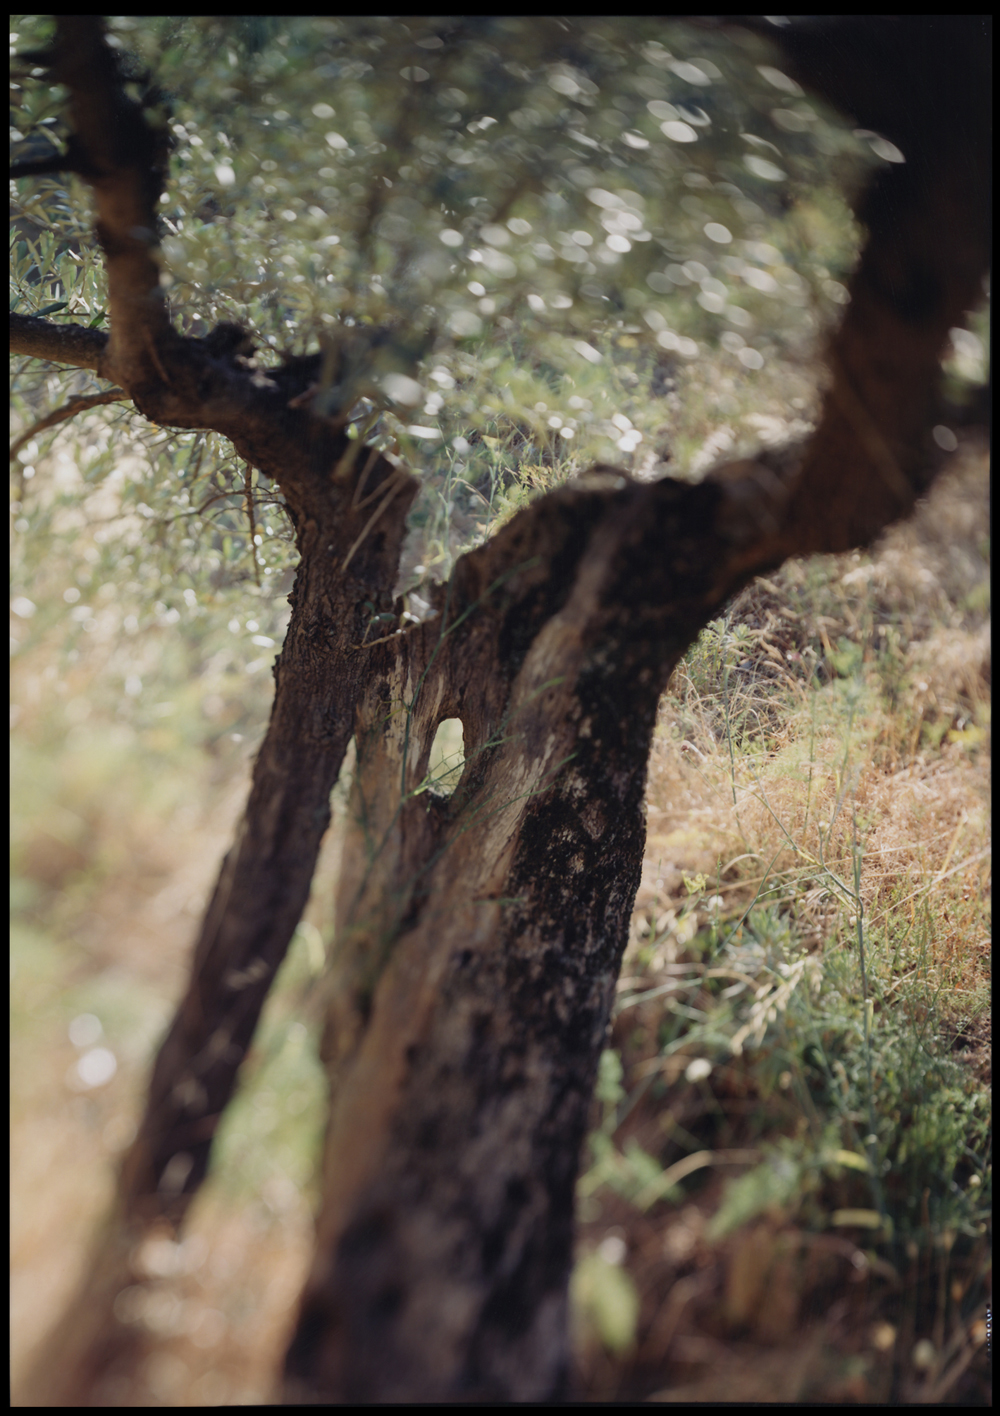 JoAnn Verburg, Under the Rocca, 2002, 40 x 28.25 inches, edition of 15, price on request